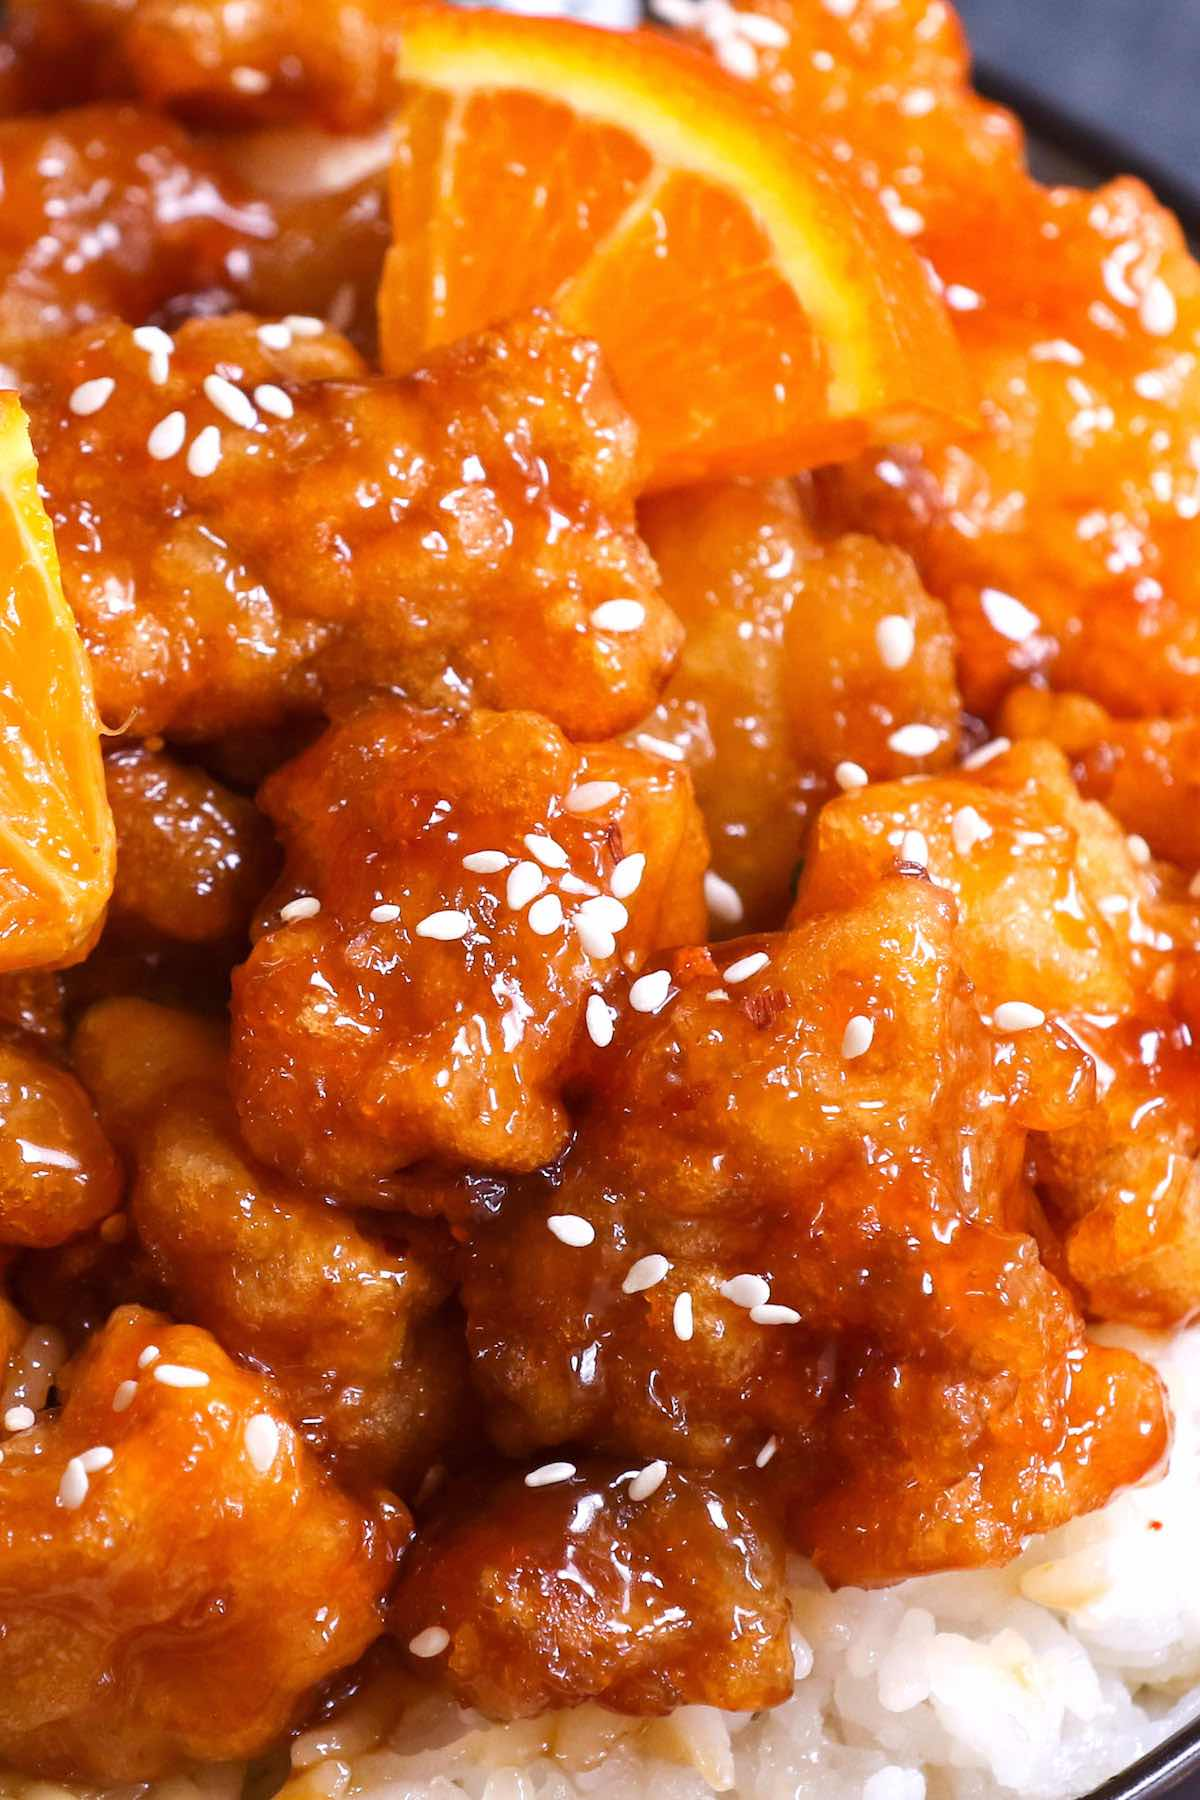 Closeup of orange chicken garnished with sesame seeds